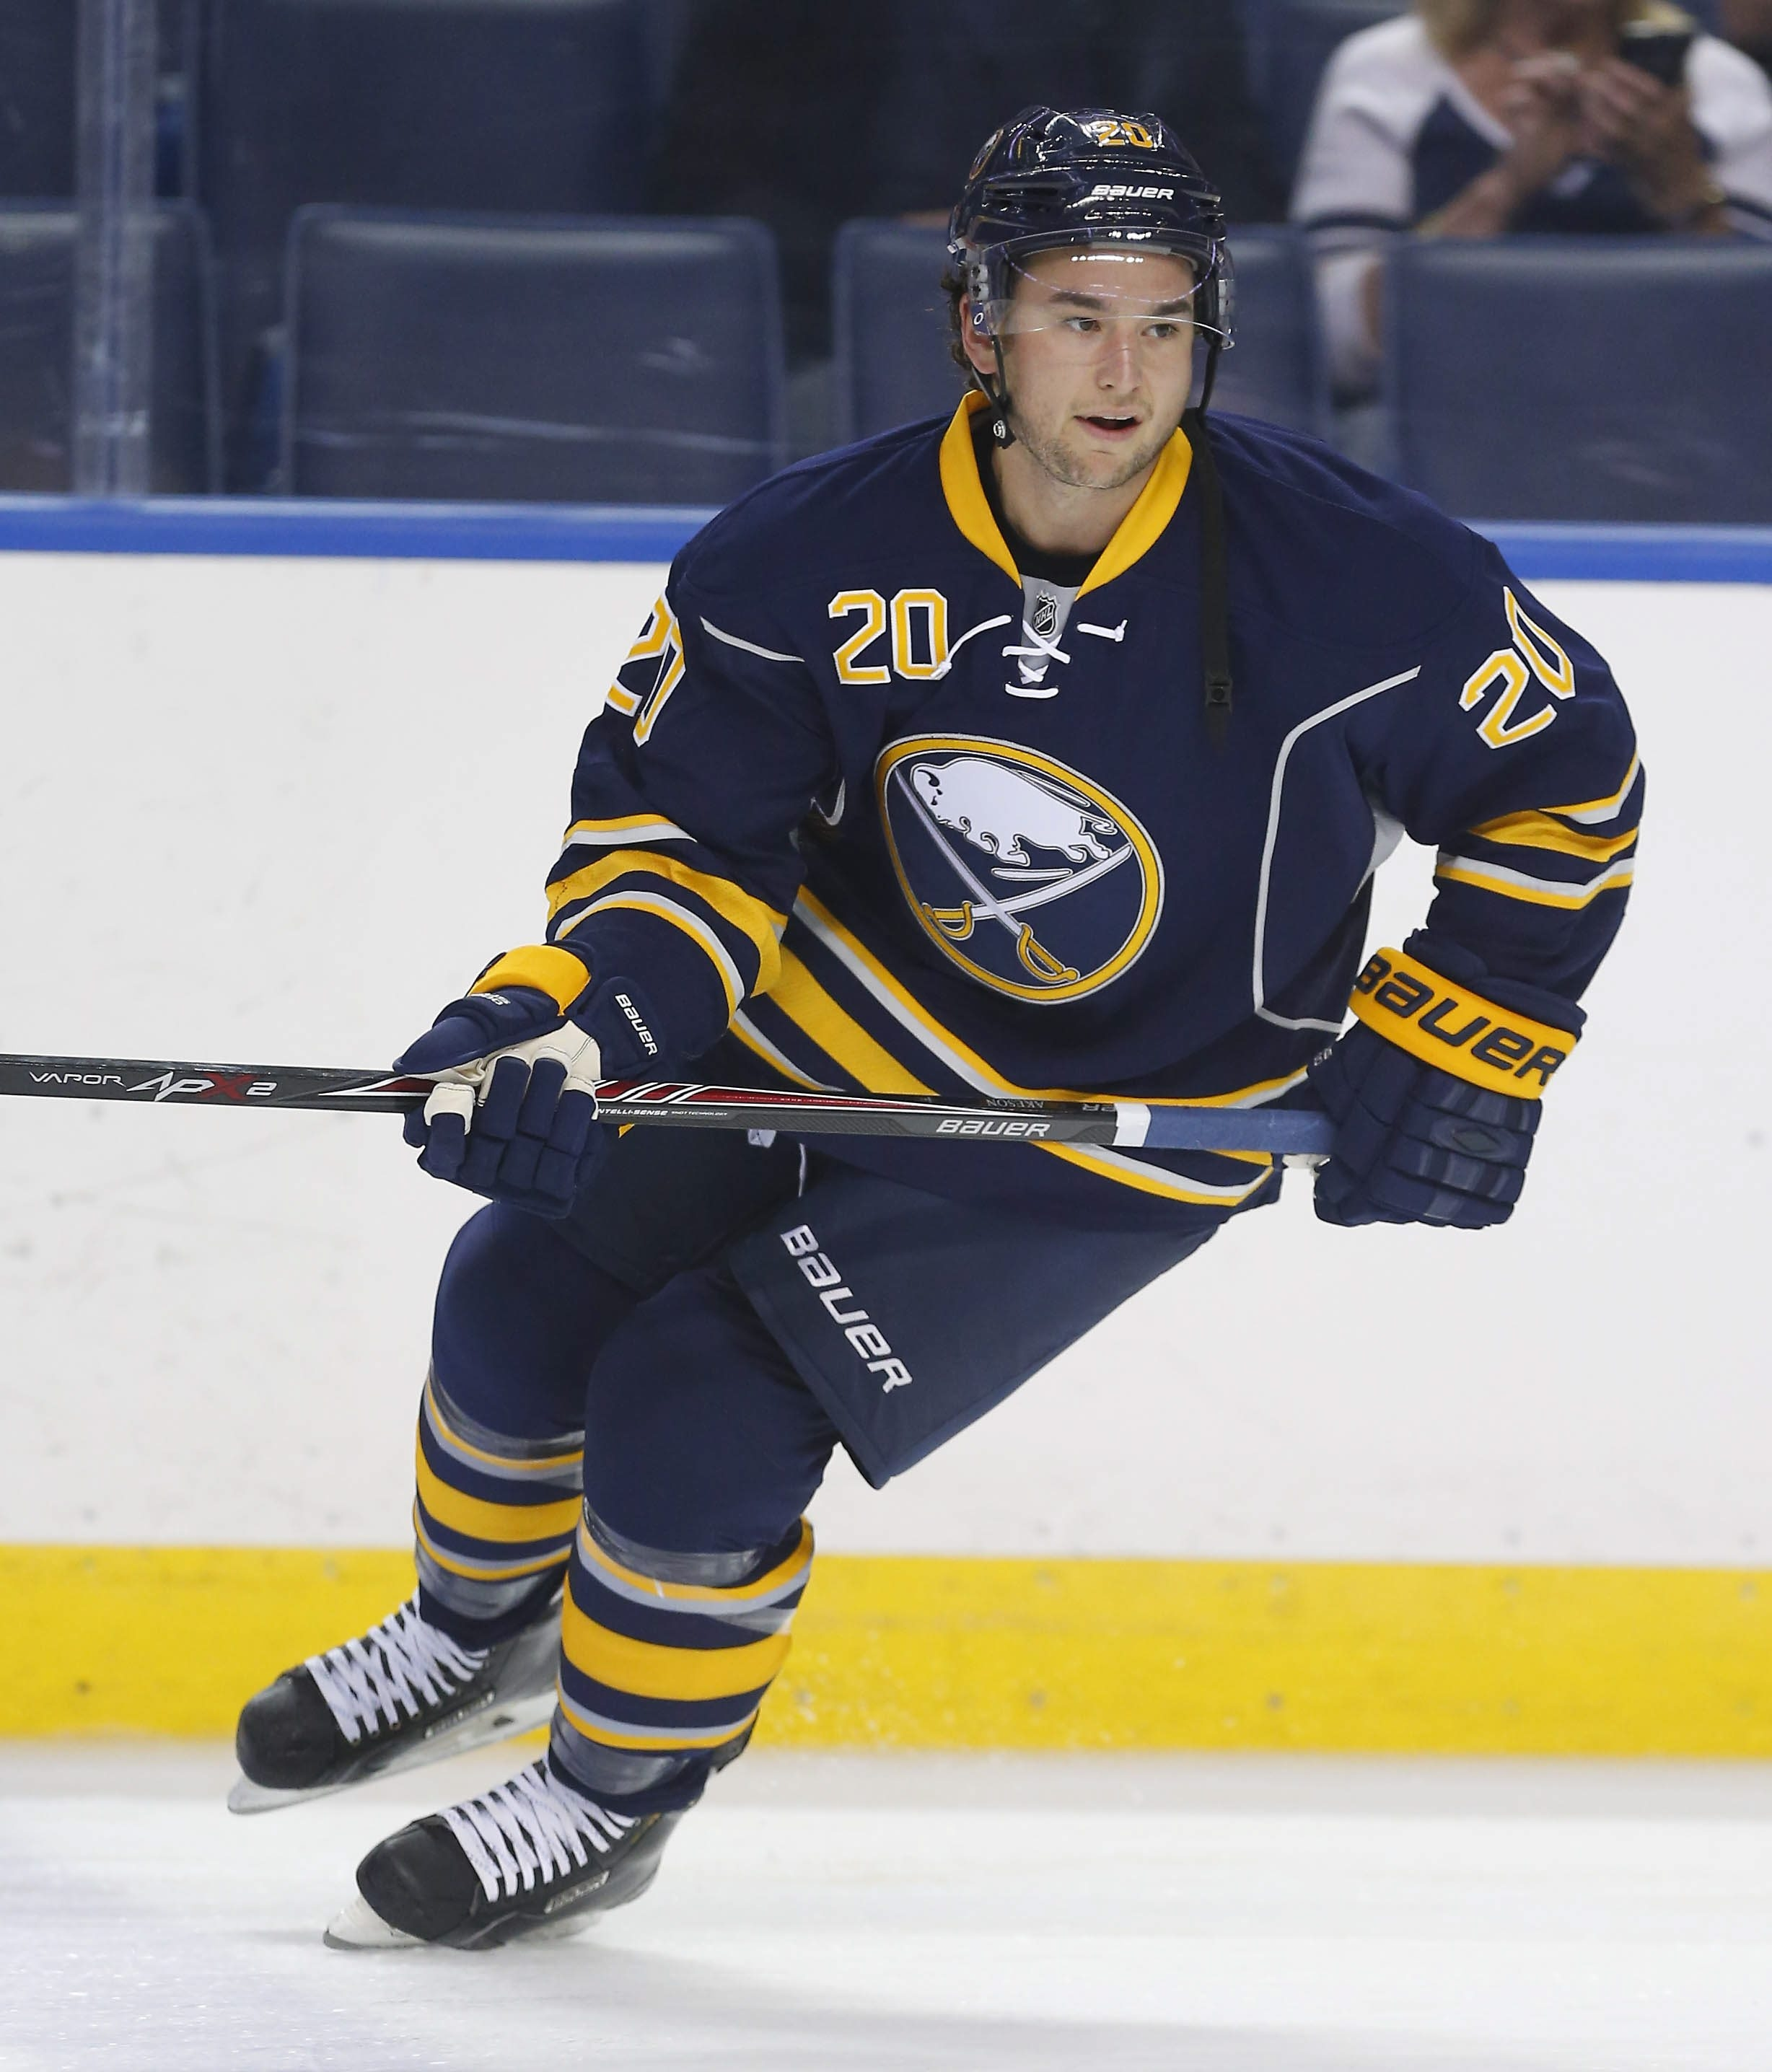 Jason Akeson has signed a one-year contract with the Sabres.